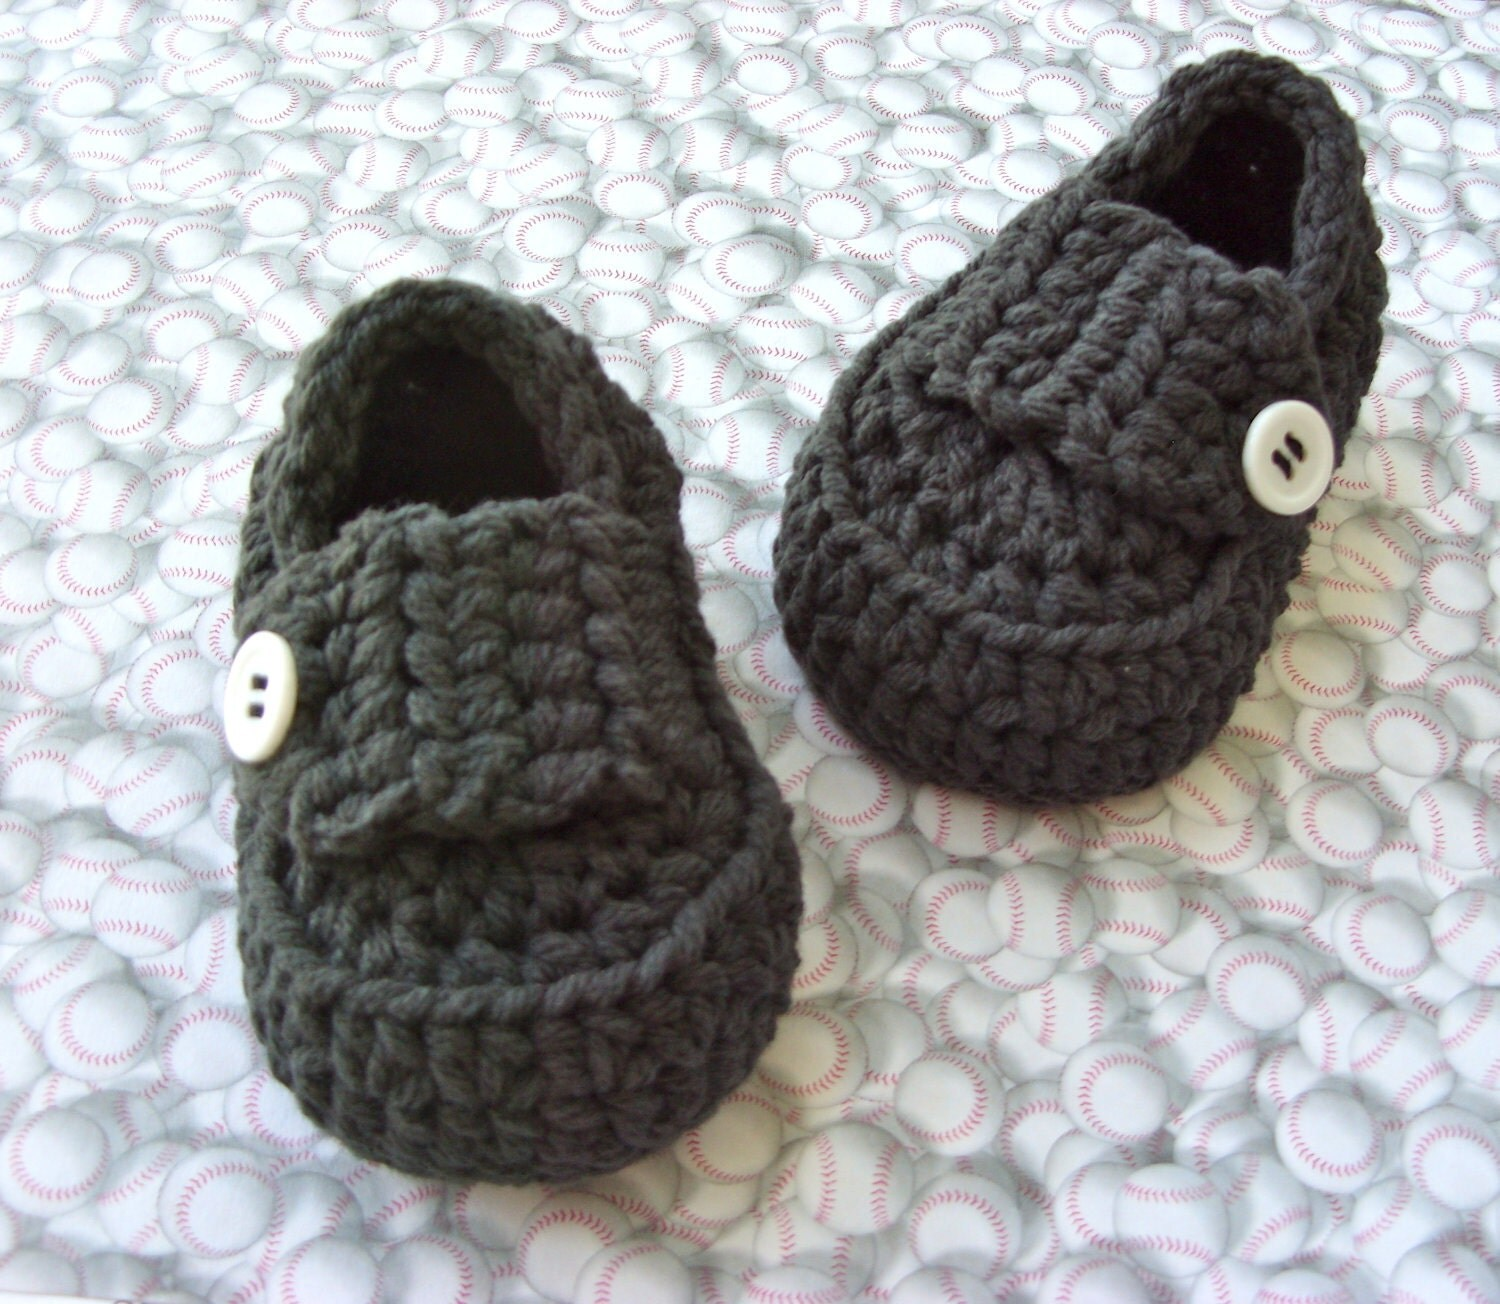 Baby sandals keep baby cool and eacvuazs.ga thong design or hook & loop tape closures makes putting them on a eacvuazs.gas are available at Kohl's in many fashionably functional styles. Give your little one a cool, retro style in baby Converse shoes.